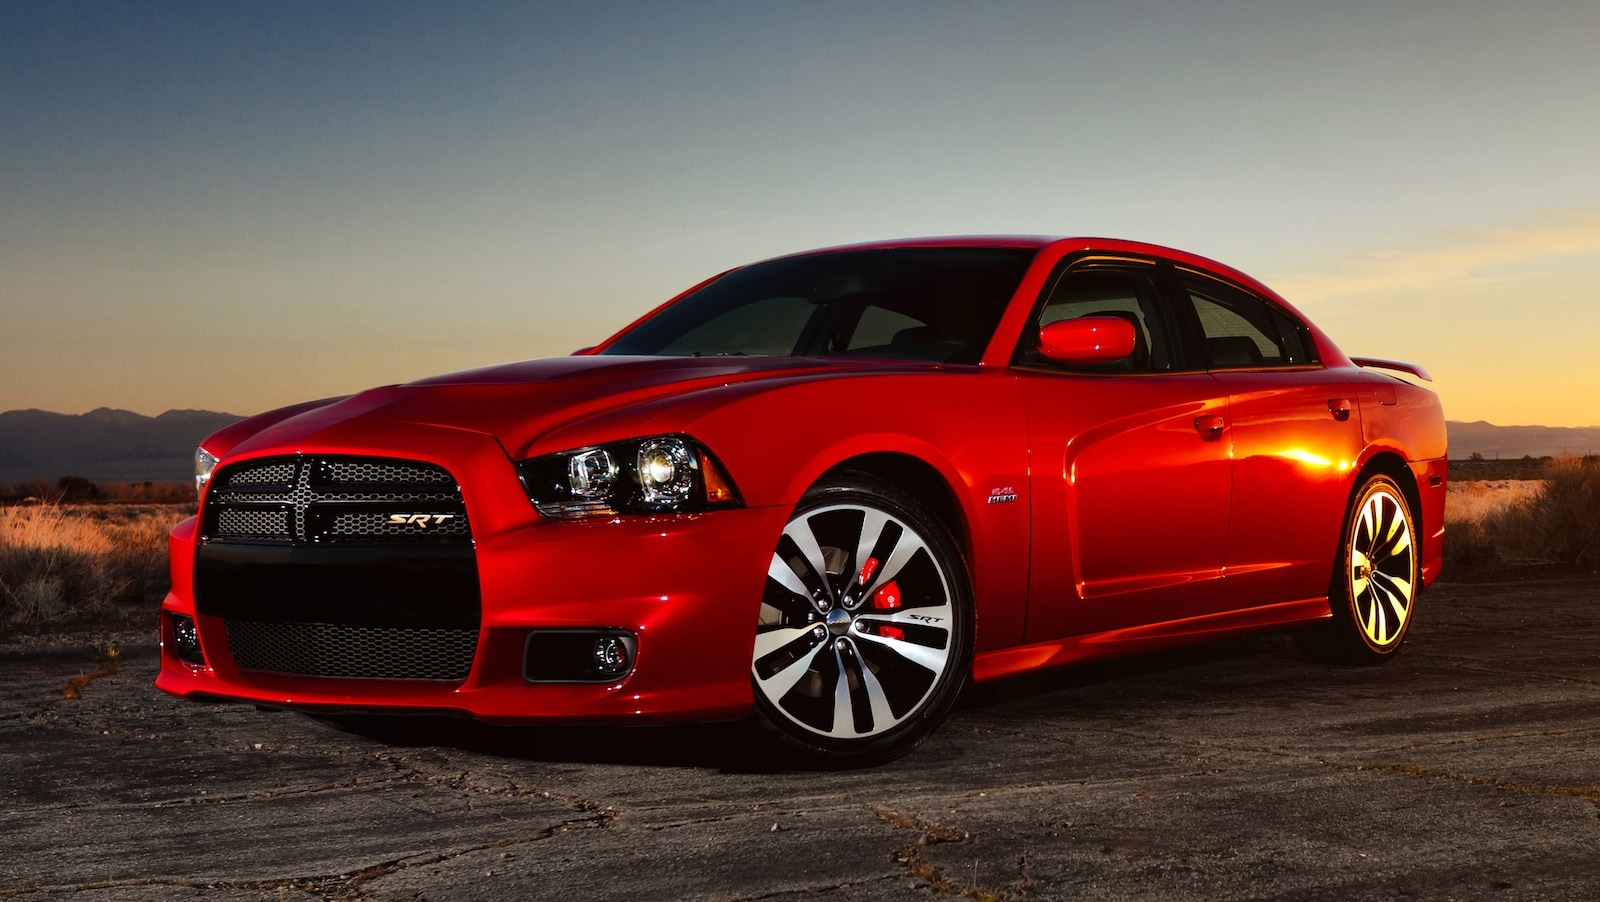 2014 dodge charger waldorf md - Dodge Charger 2014 Red